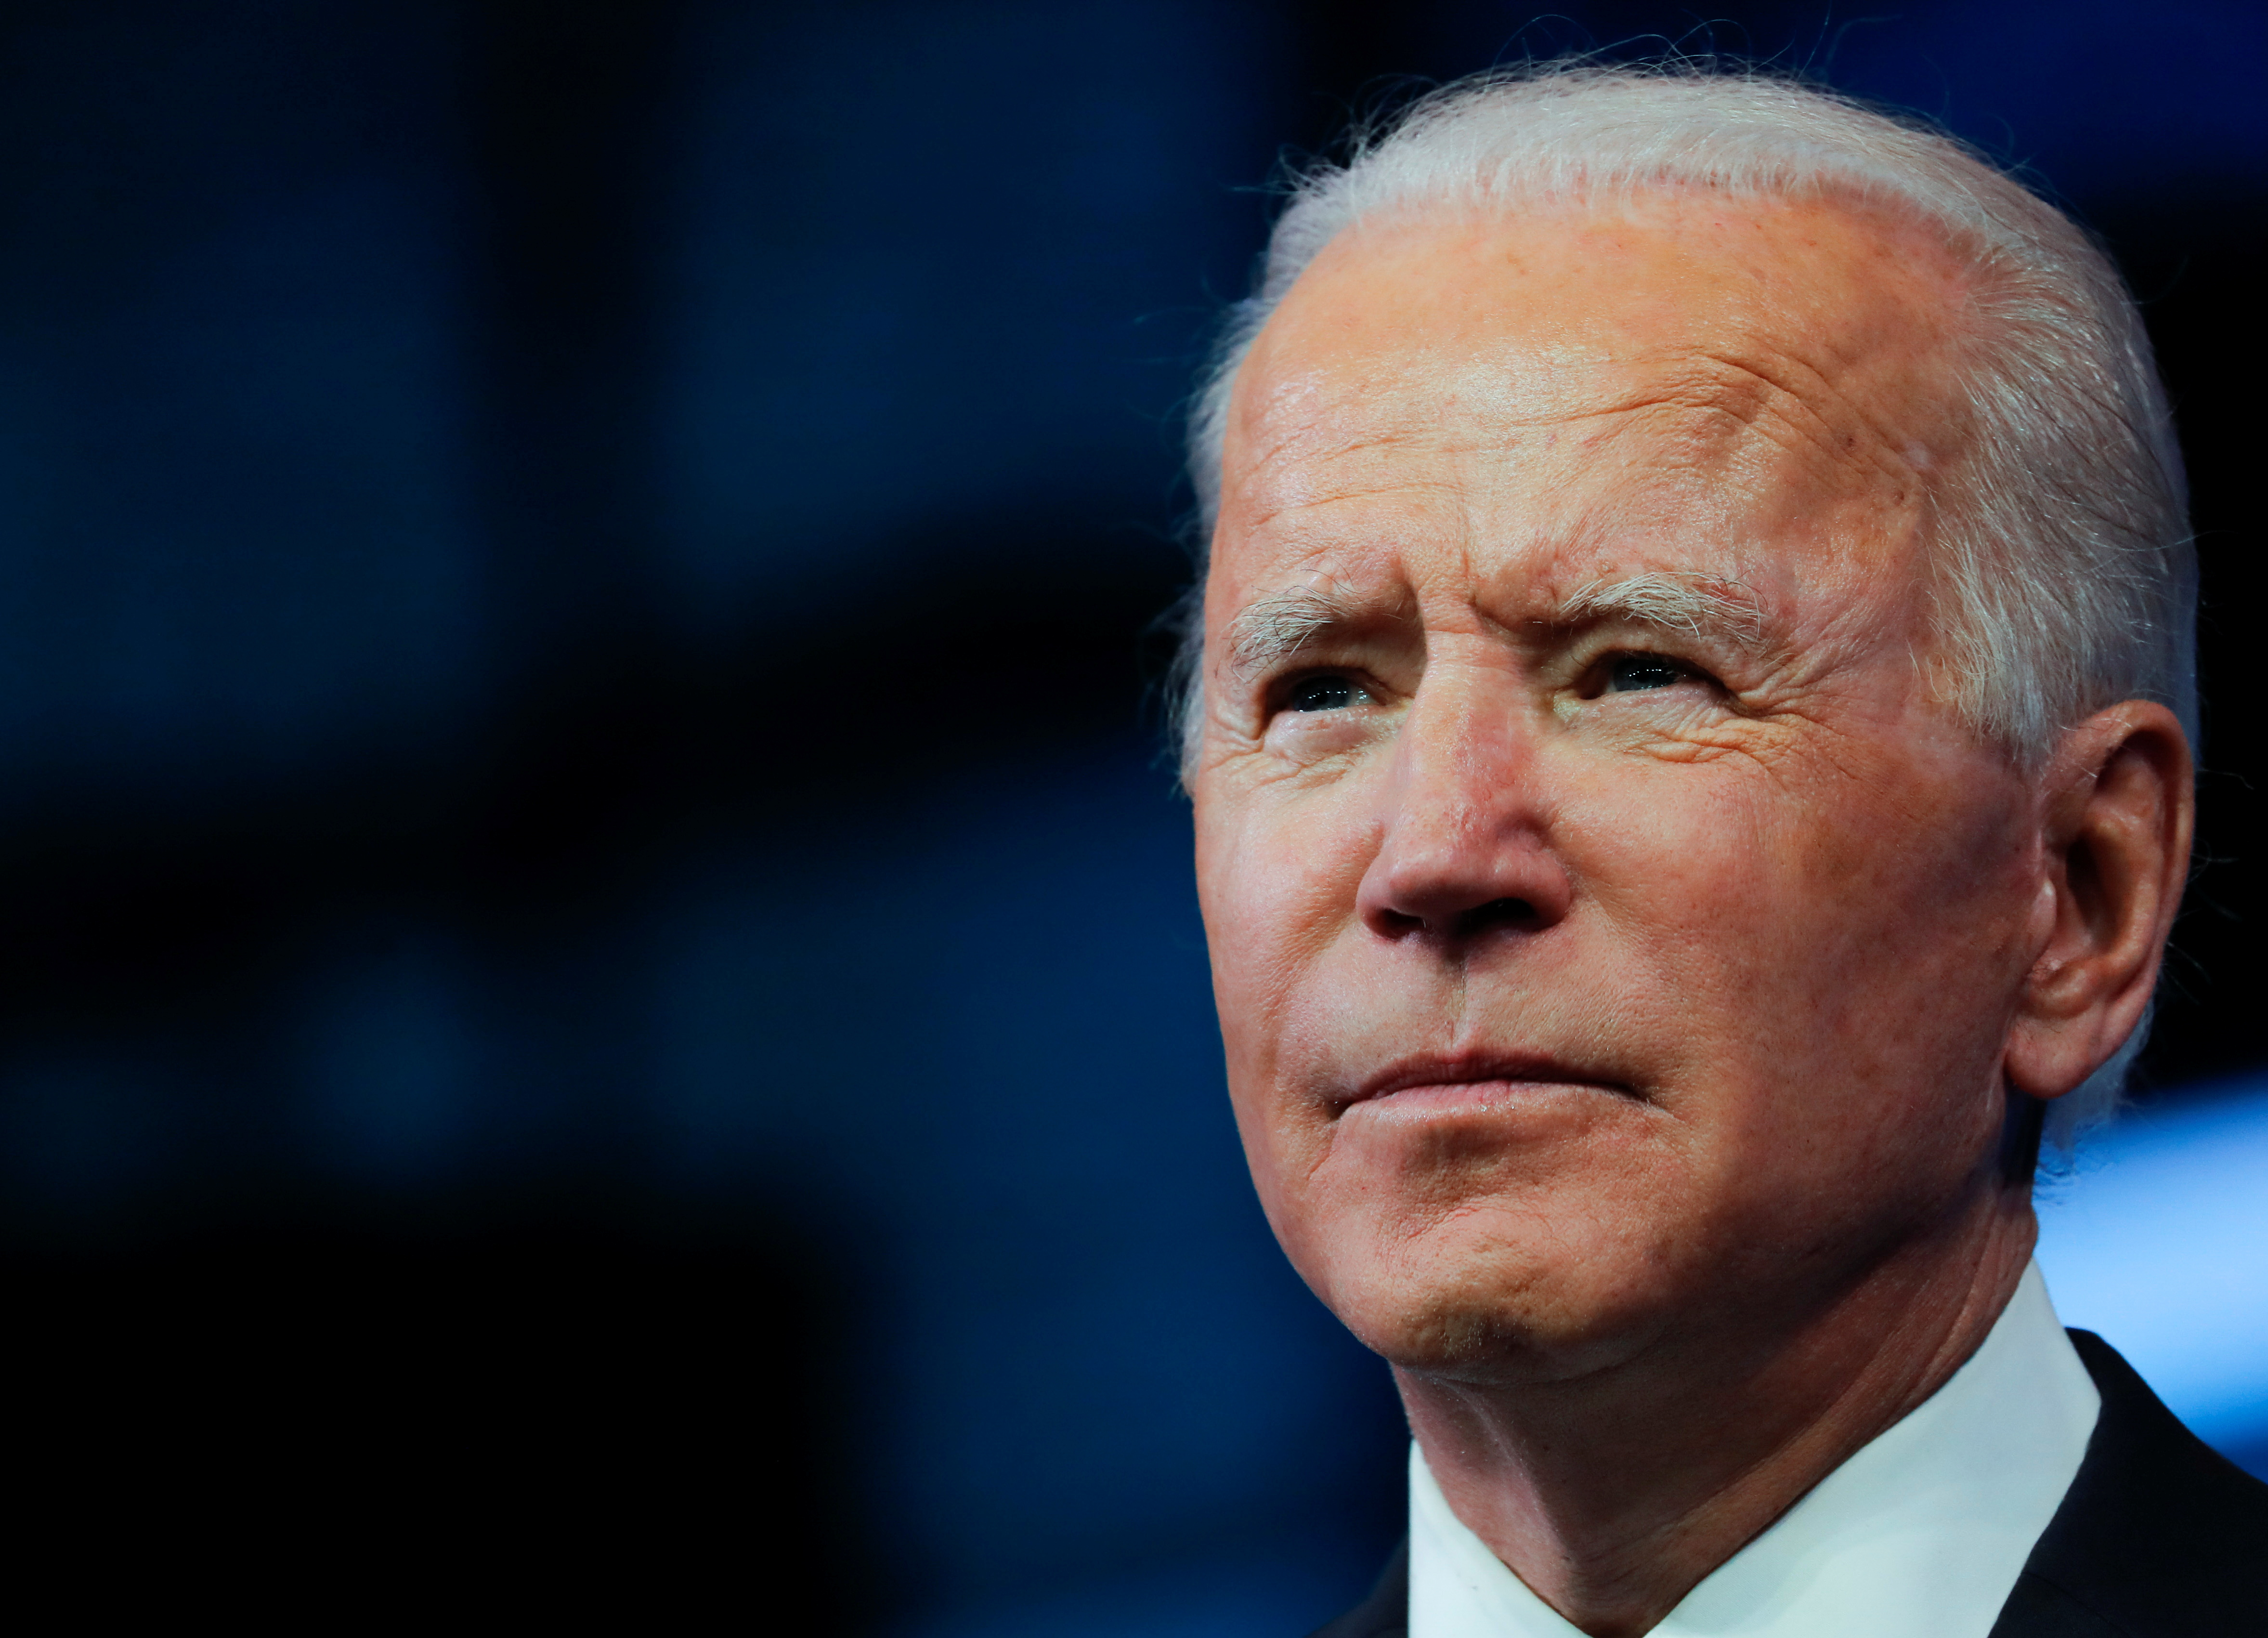 U.S. President-elect Joe Biden pauses as he delivers a televised address to the nation, after the U.S. Electoral College formally confirmed his victory over President Donald Trump in the 2020 U.S. presidential election, from Biden's transition headquarters at the Queen Theater in Wilmington, Delaware, U.S., December 14, 2020. REUTERS/Mike Segar